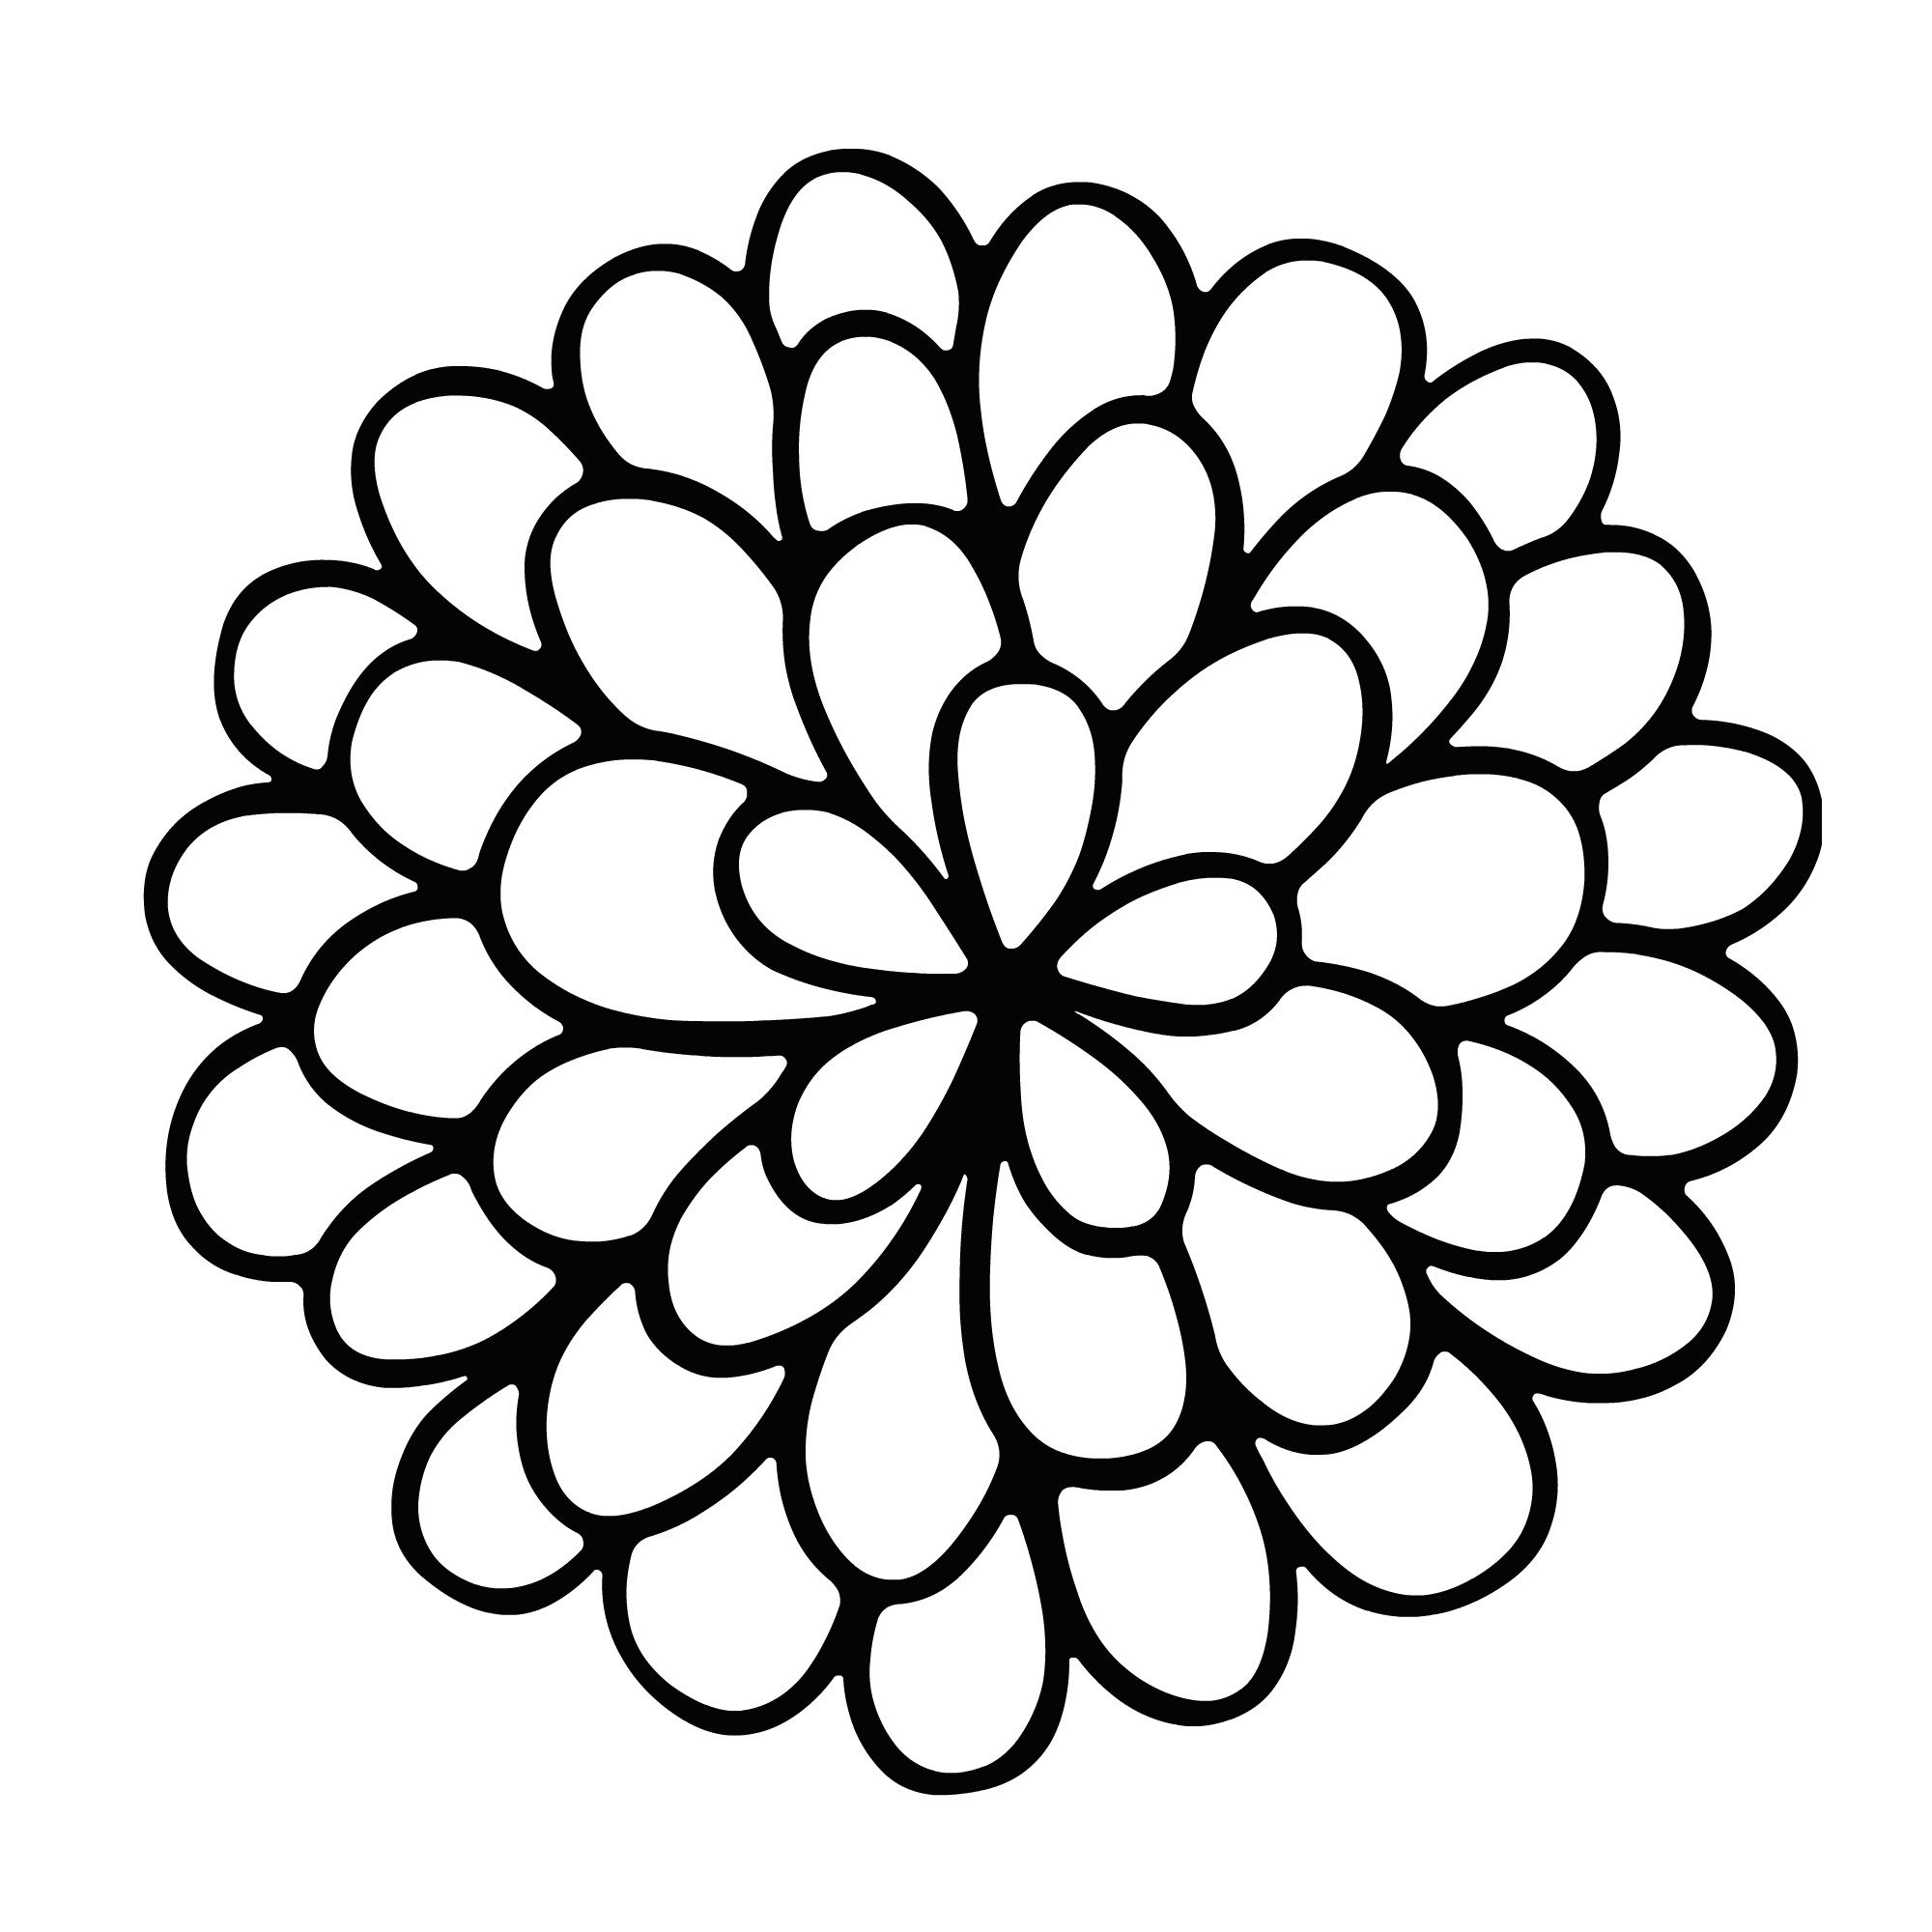 Simple Marigold Flower Coloring Pages